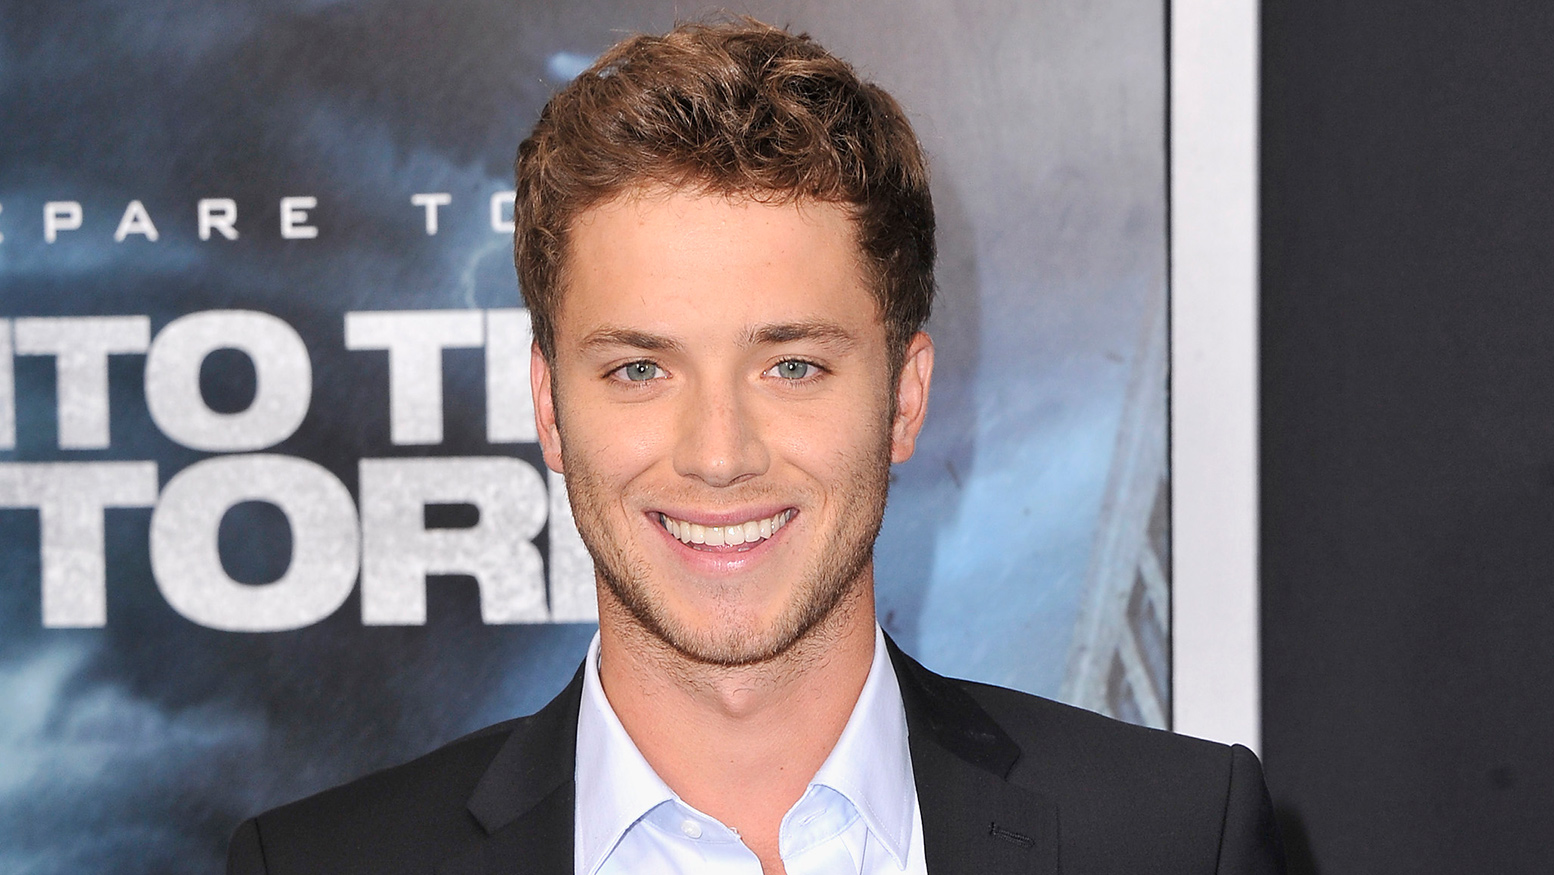 Jewelry 2018 >> Peter Pan is Getting Married: Actor Jeremy Sumpter Engaged